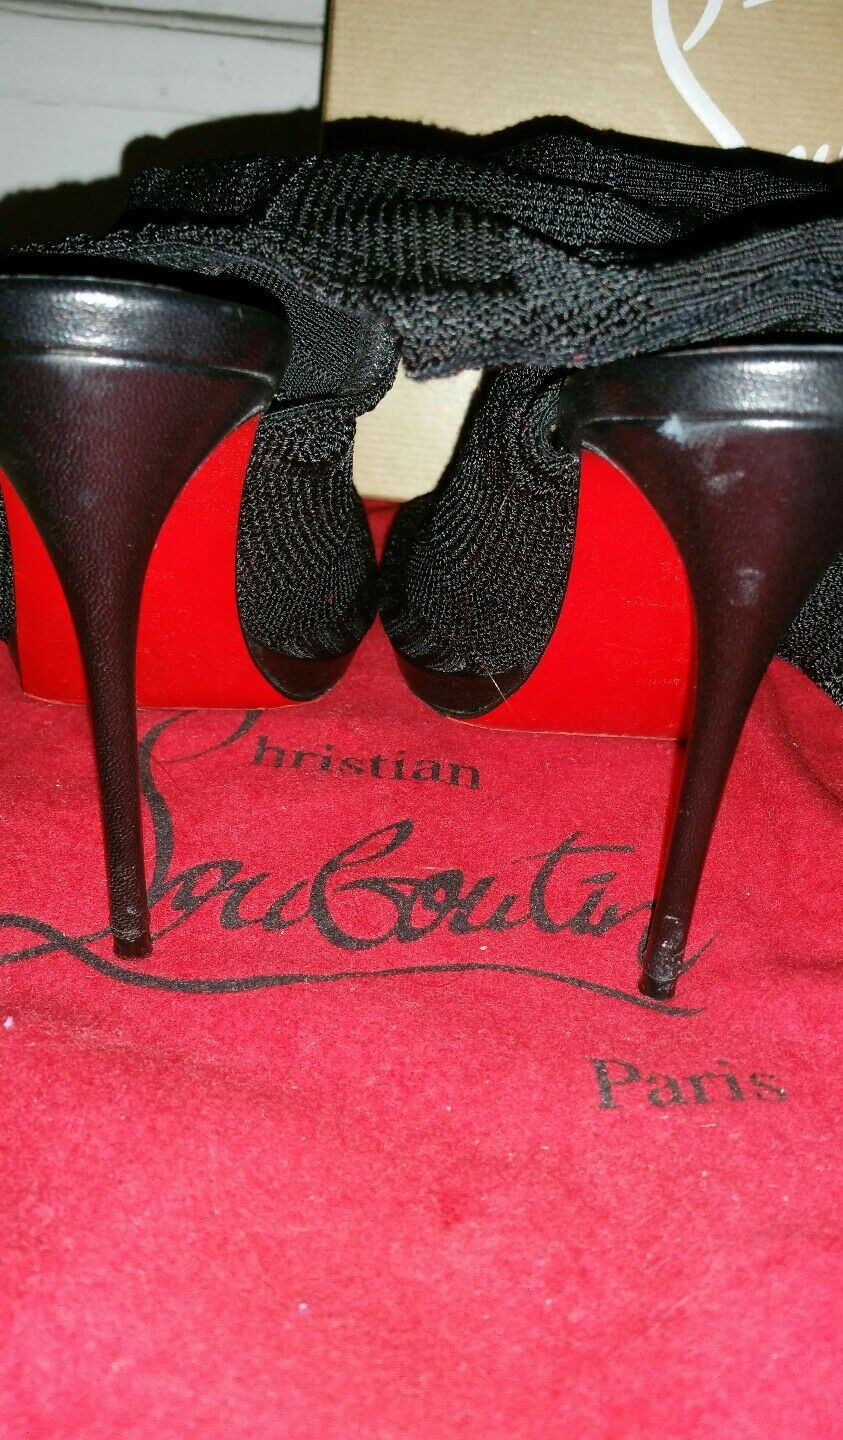 Christian taille Louboutin-Souliers noirs - Cheminene - 35,5 taille Christian fran?aise//US4 c33ea9